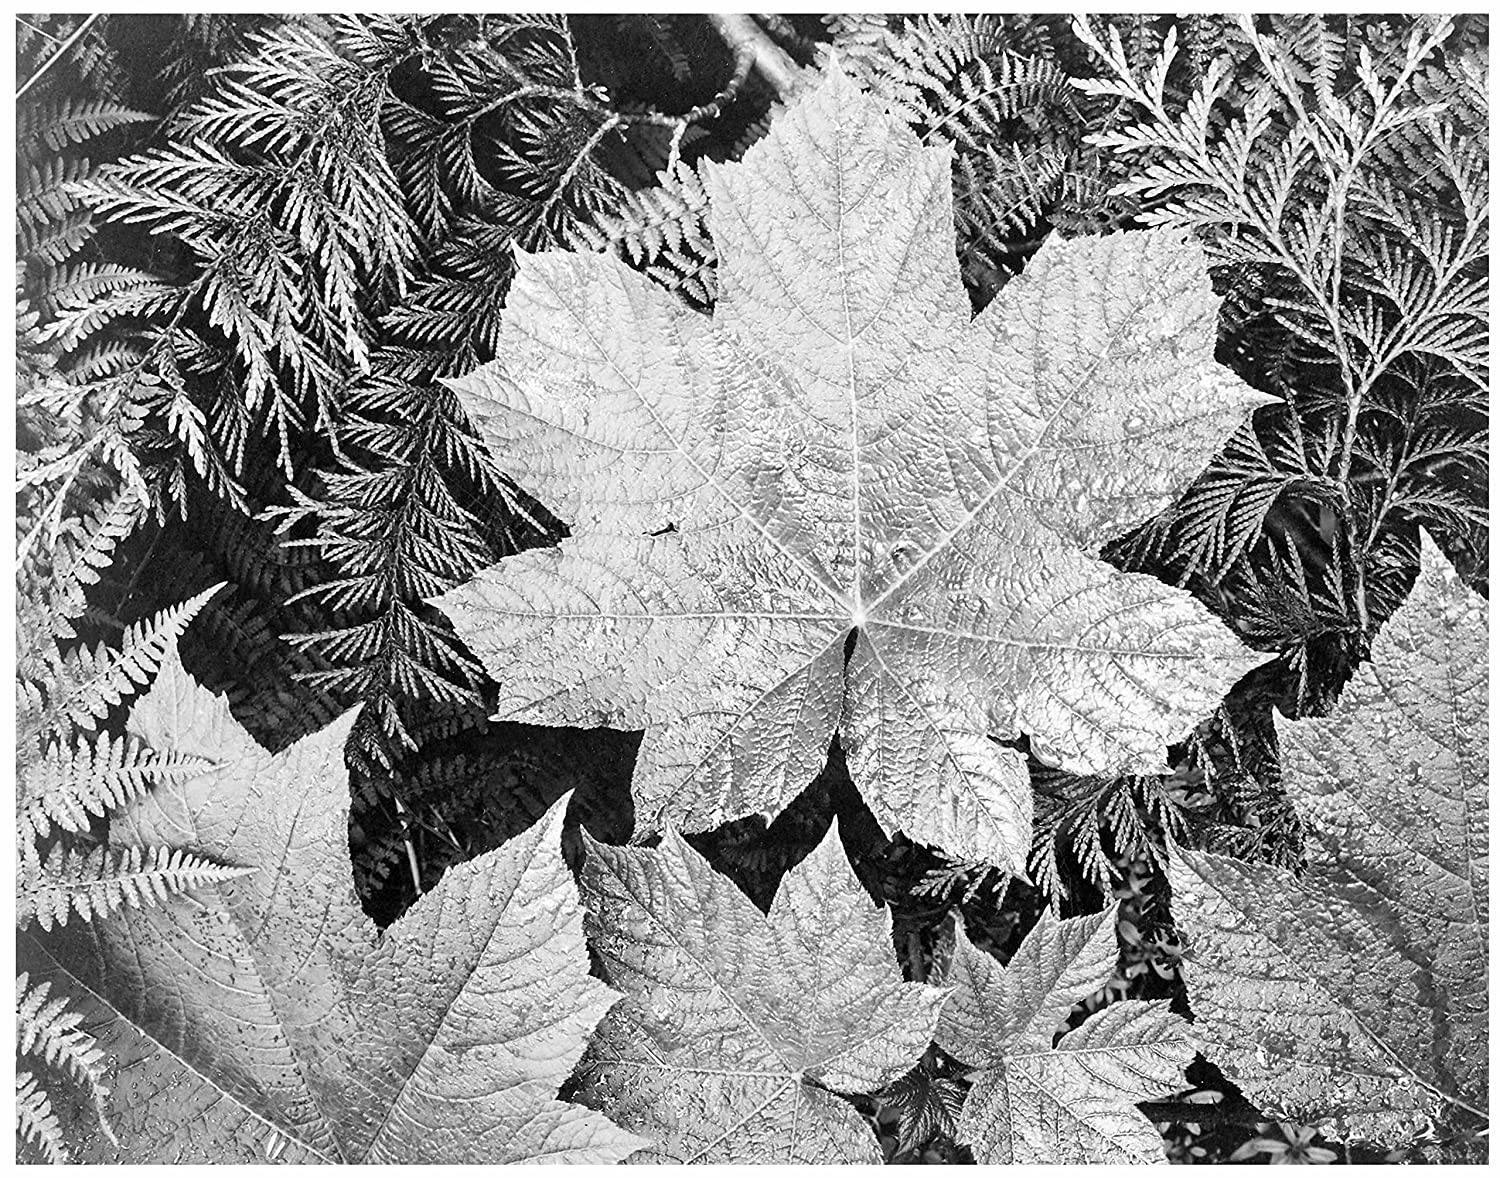 ArtDash® Ansel Adams by Studios. Iconic Black & White Photographs: (Leaves, 8